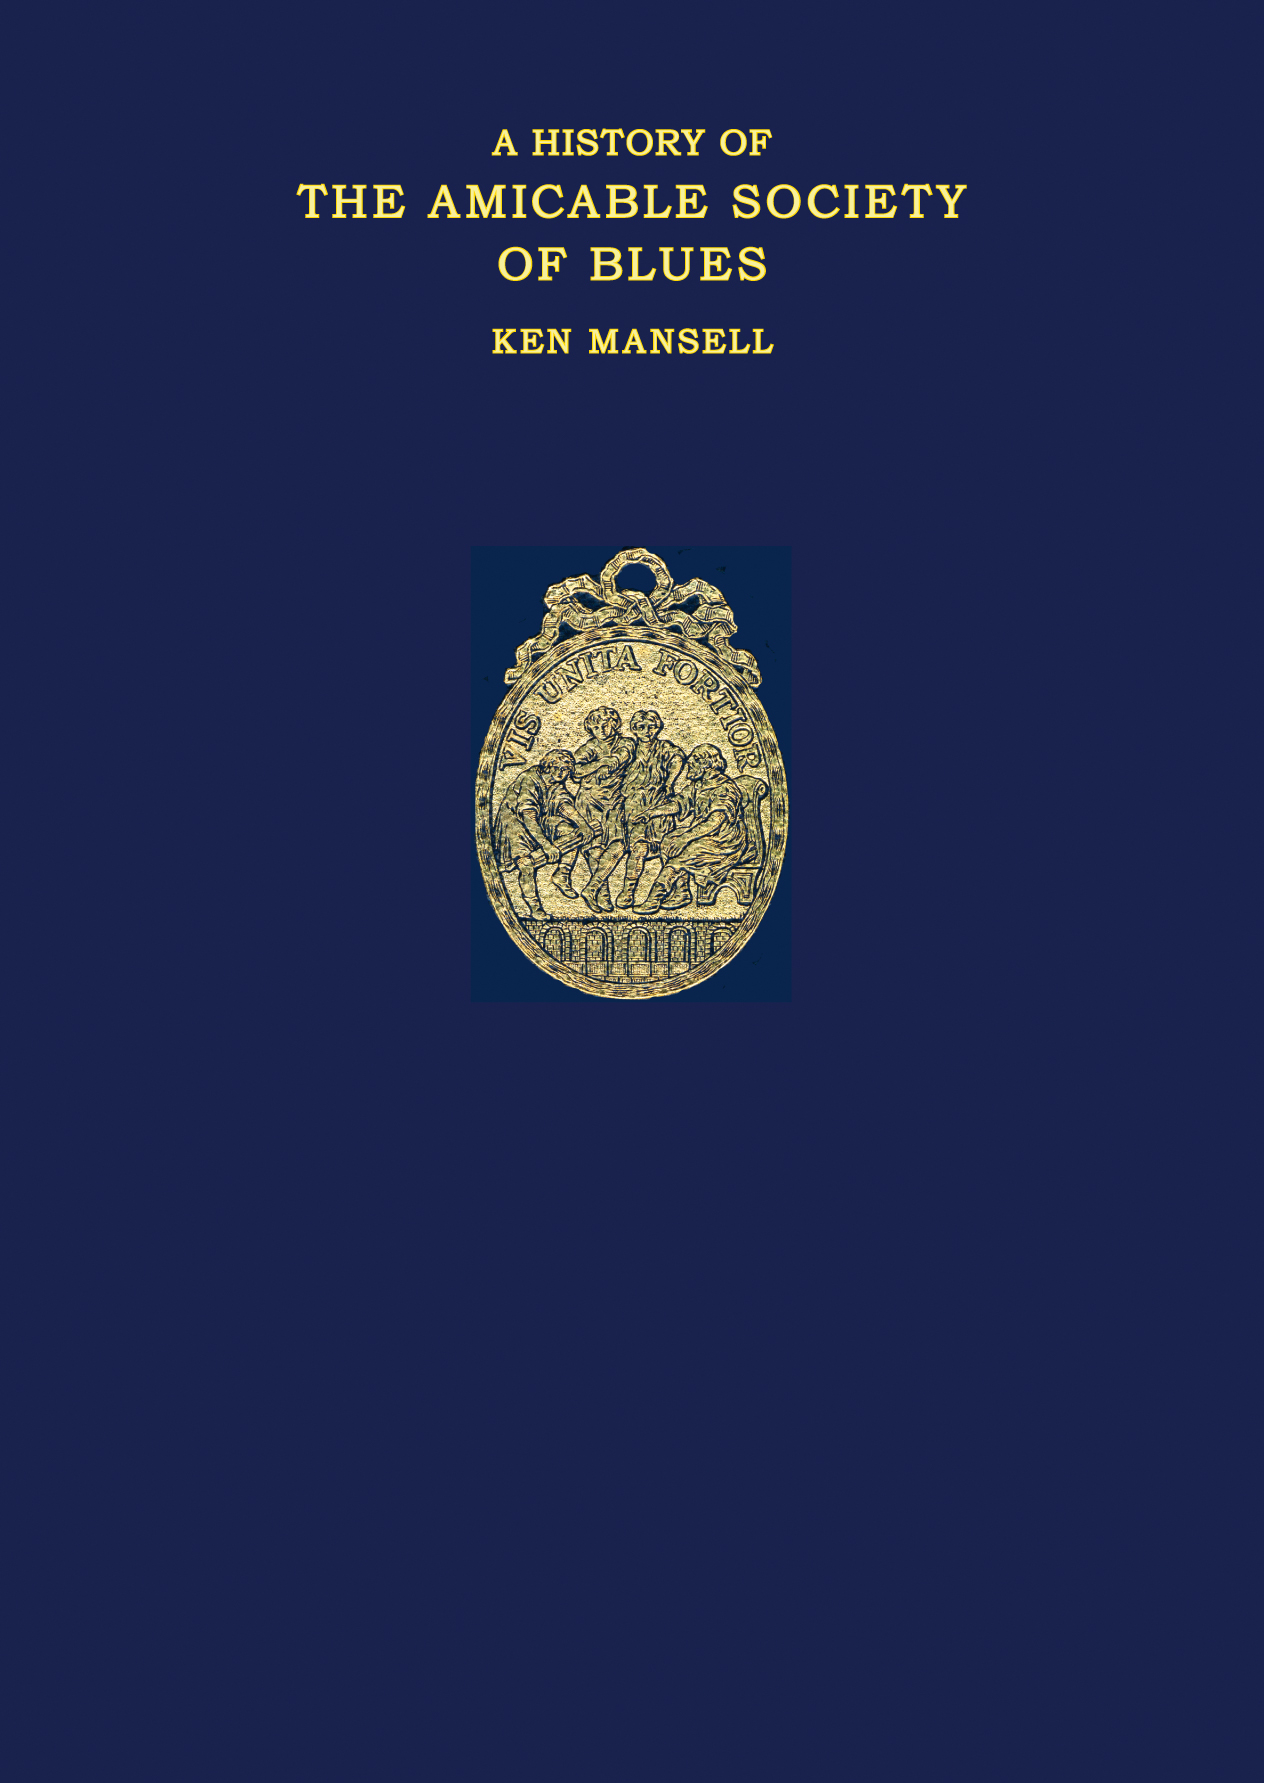 A History of the Amicable Society of Blues by Ken Mansell